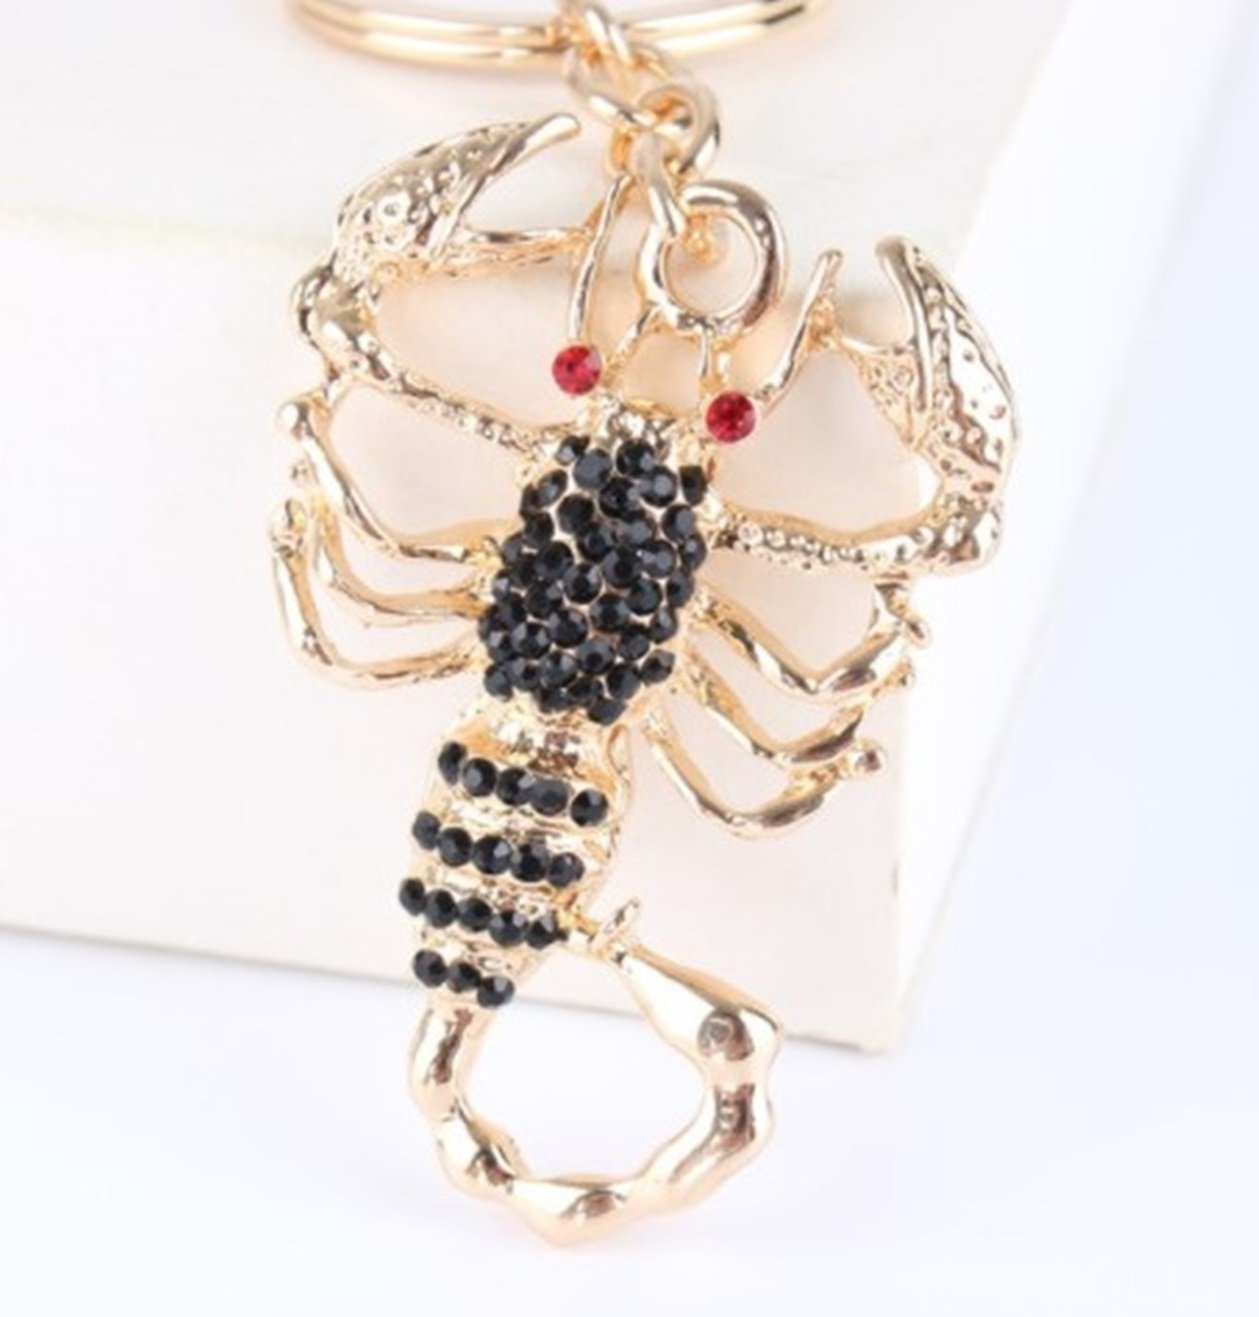 Amazon.com   1 Pc Mini Pocket Crystal Scorpion Keychain Keyring Keyfob  Wedding Birthday Party Pendant Keys Chains Rings Tags Strap Wrist Excellent  Popular ... b617c137b